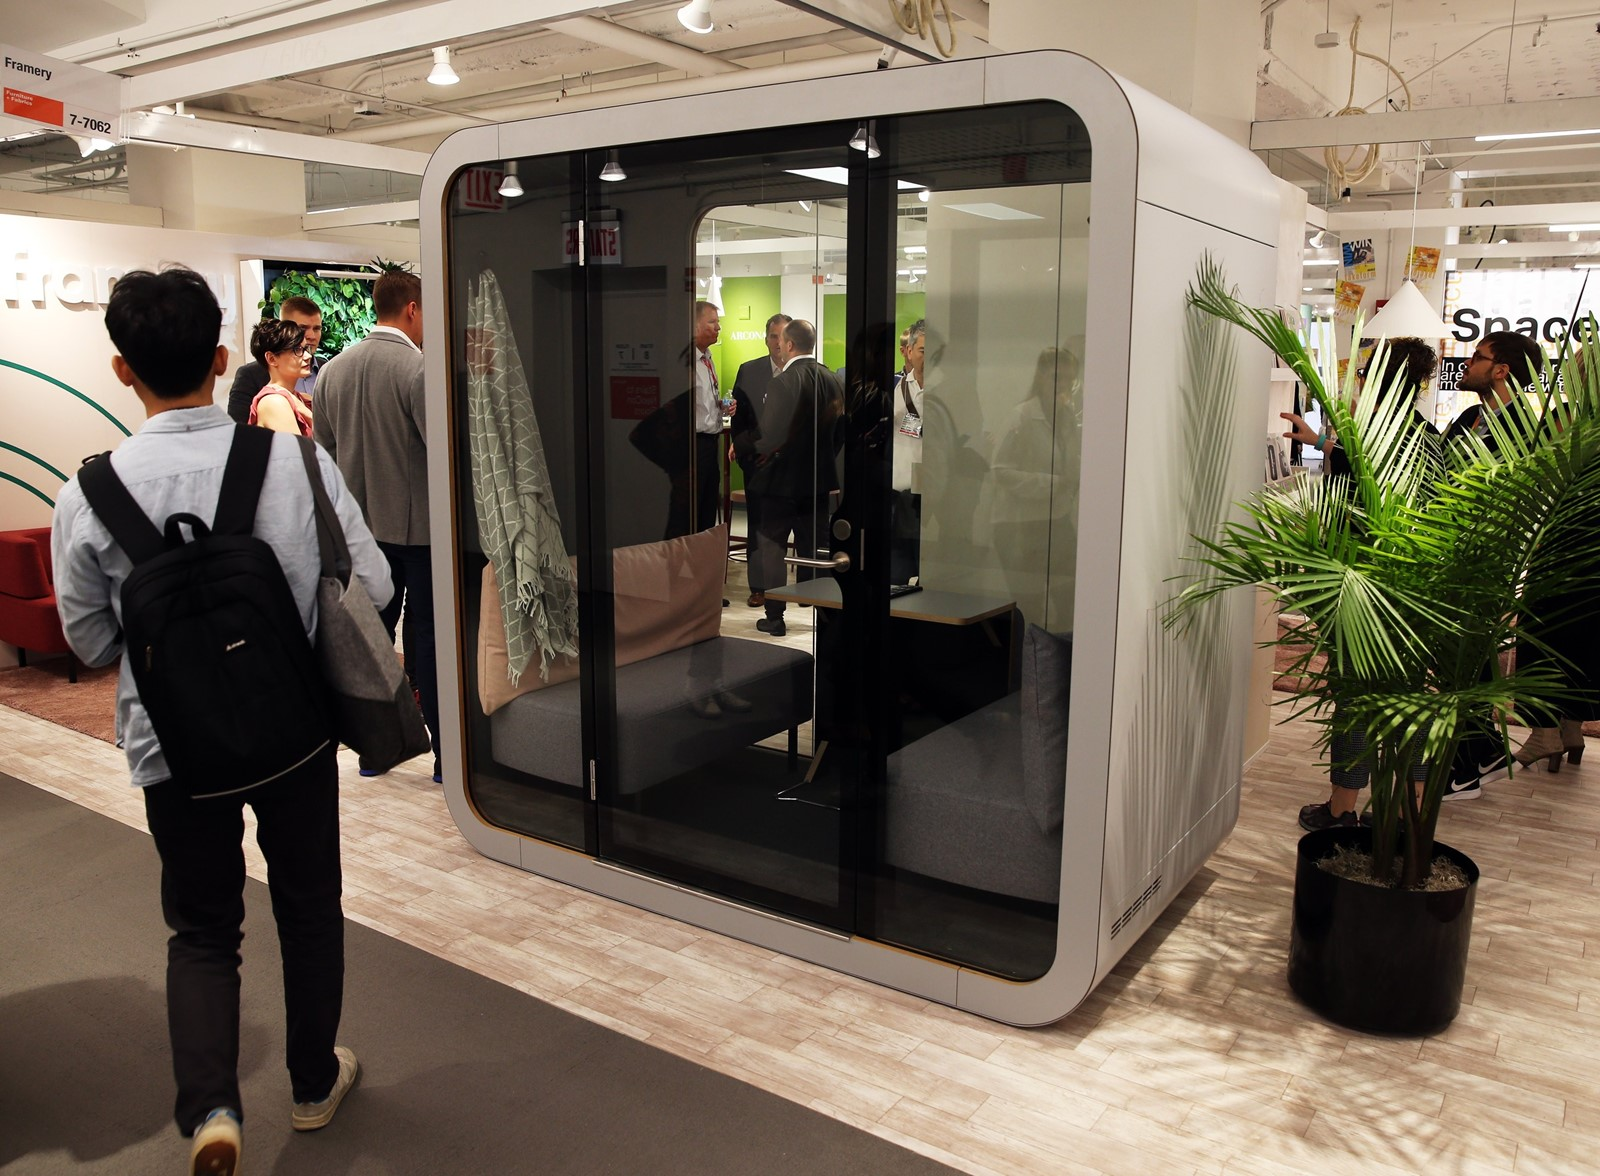 Office sleeping pod Personal Work Framery An 8yearold Finnish Company Introduced Its Napq An Office Sleeping Pod At Trade Show In Chicago Last Month photographs Byterrence Antonio Sellmytees Print Employers Wake Up To Pluses Of Office Naps Office Naps Losing